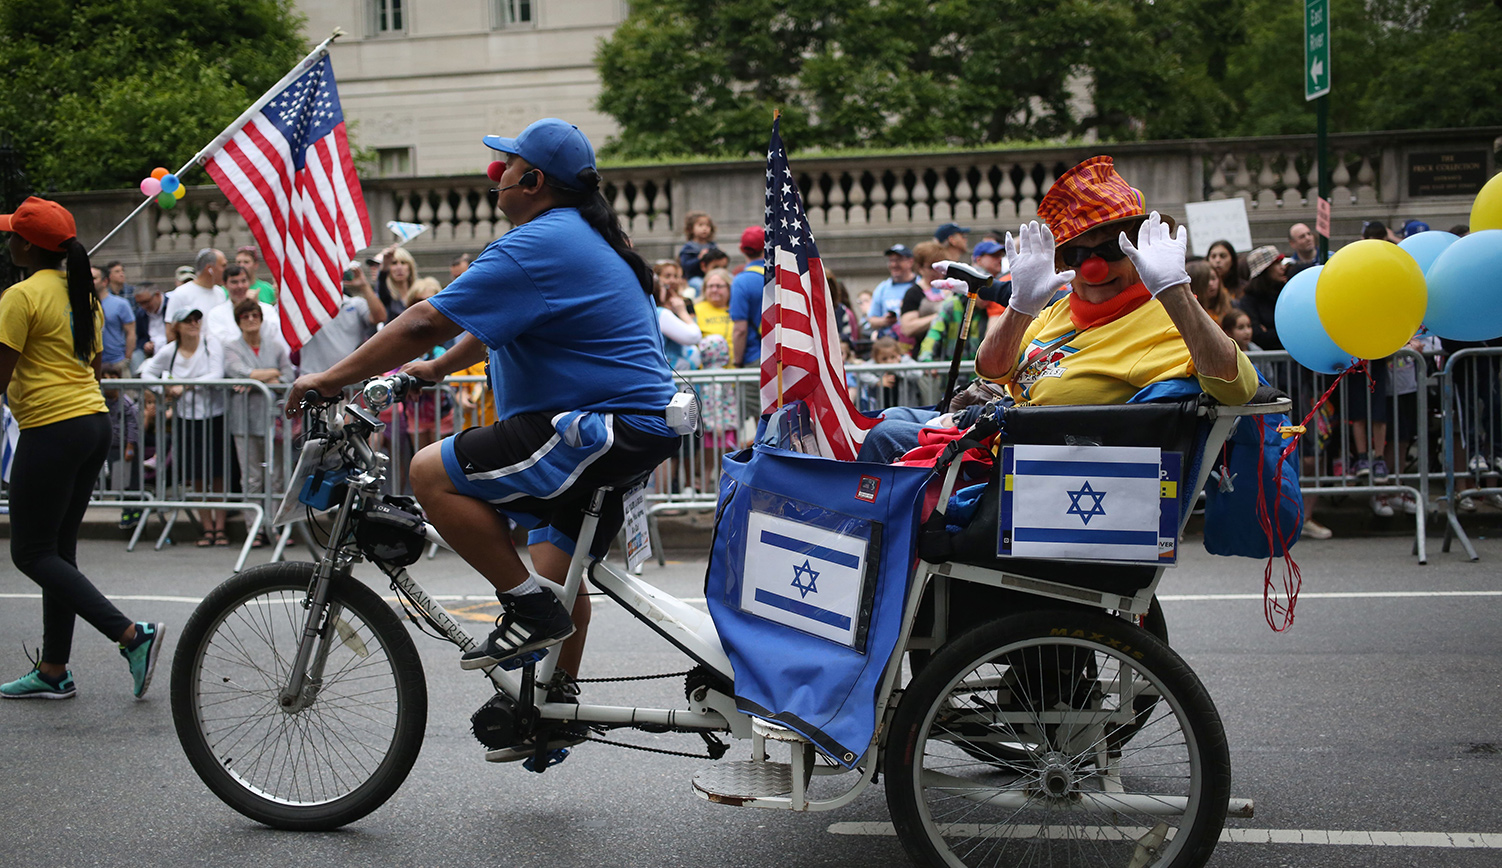 The Celebrate Israel parade on 5th Avenue in Manhattan on June 4, 2017. Mohammed Elshamy/Anadolu Agency/Getty Images.